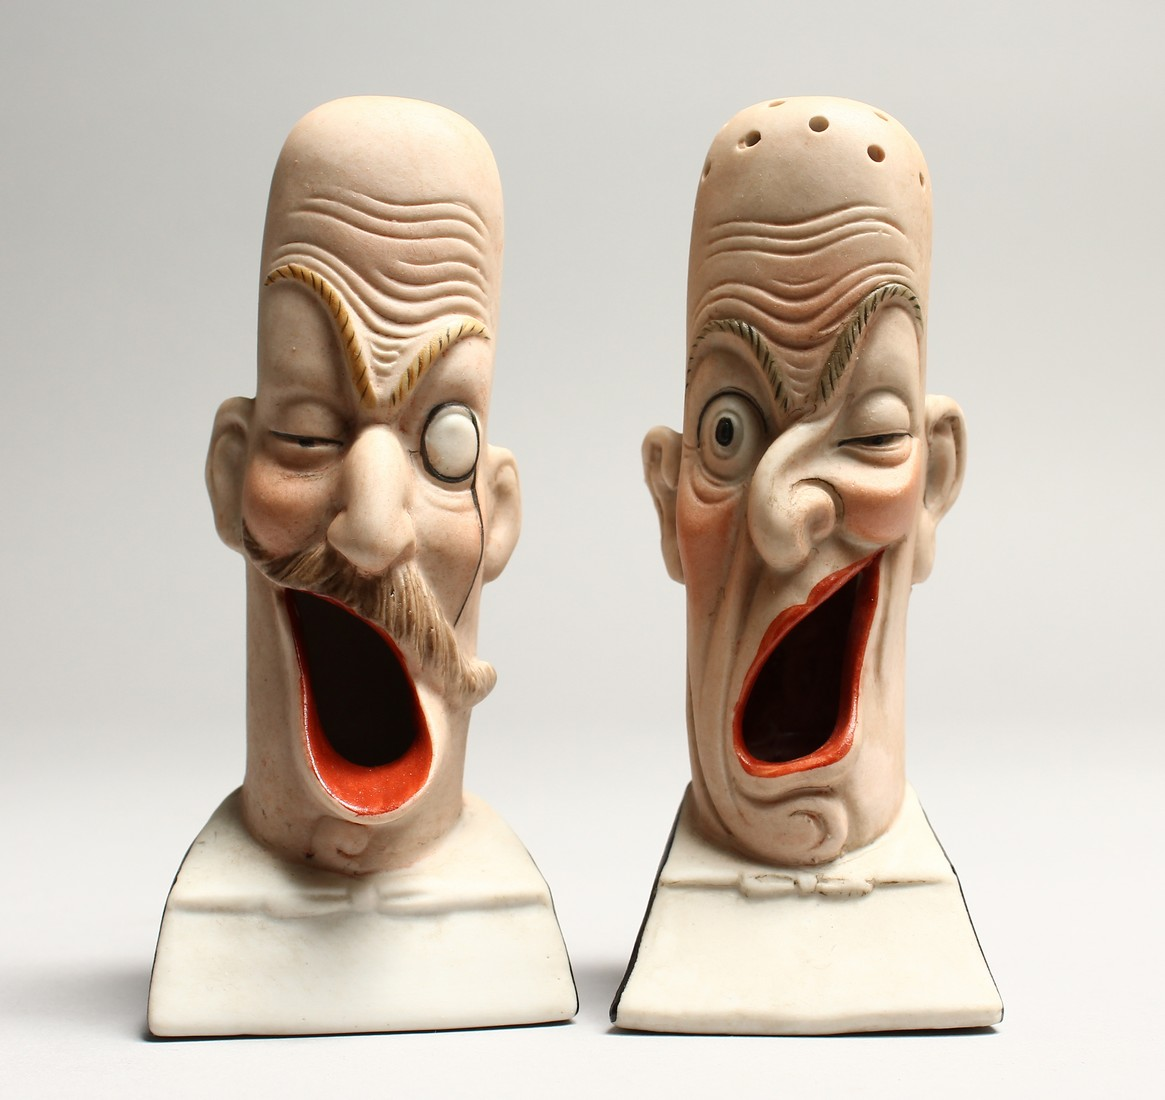 A PAIR OF POTTERY MEN'S HEADS ASHTRAYS. 5in high.